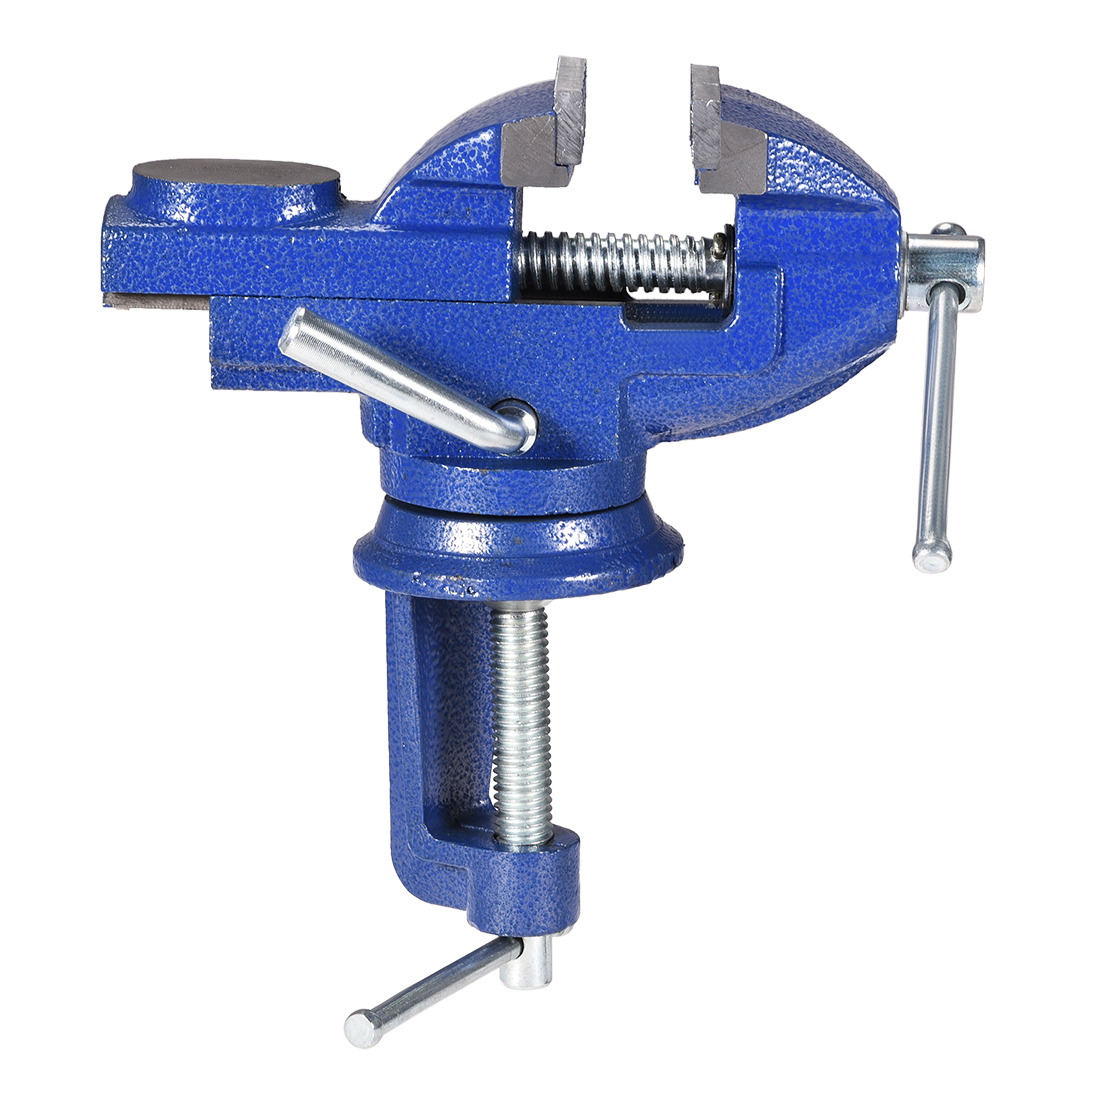 uxcell Clamp Vise 2-Inch (50mm) Carbon Steel Jaws 360 Degree Swivel Table Bench Vise Clamp-On Vise